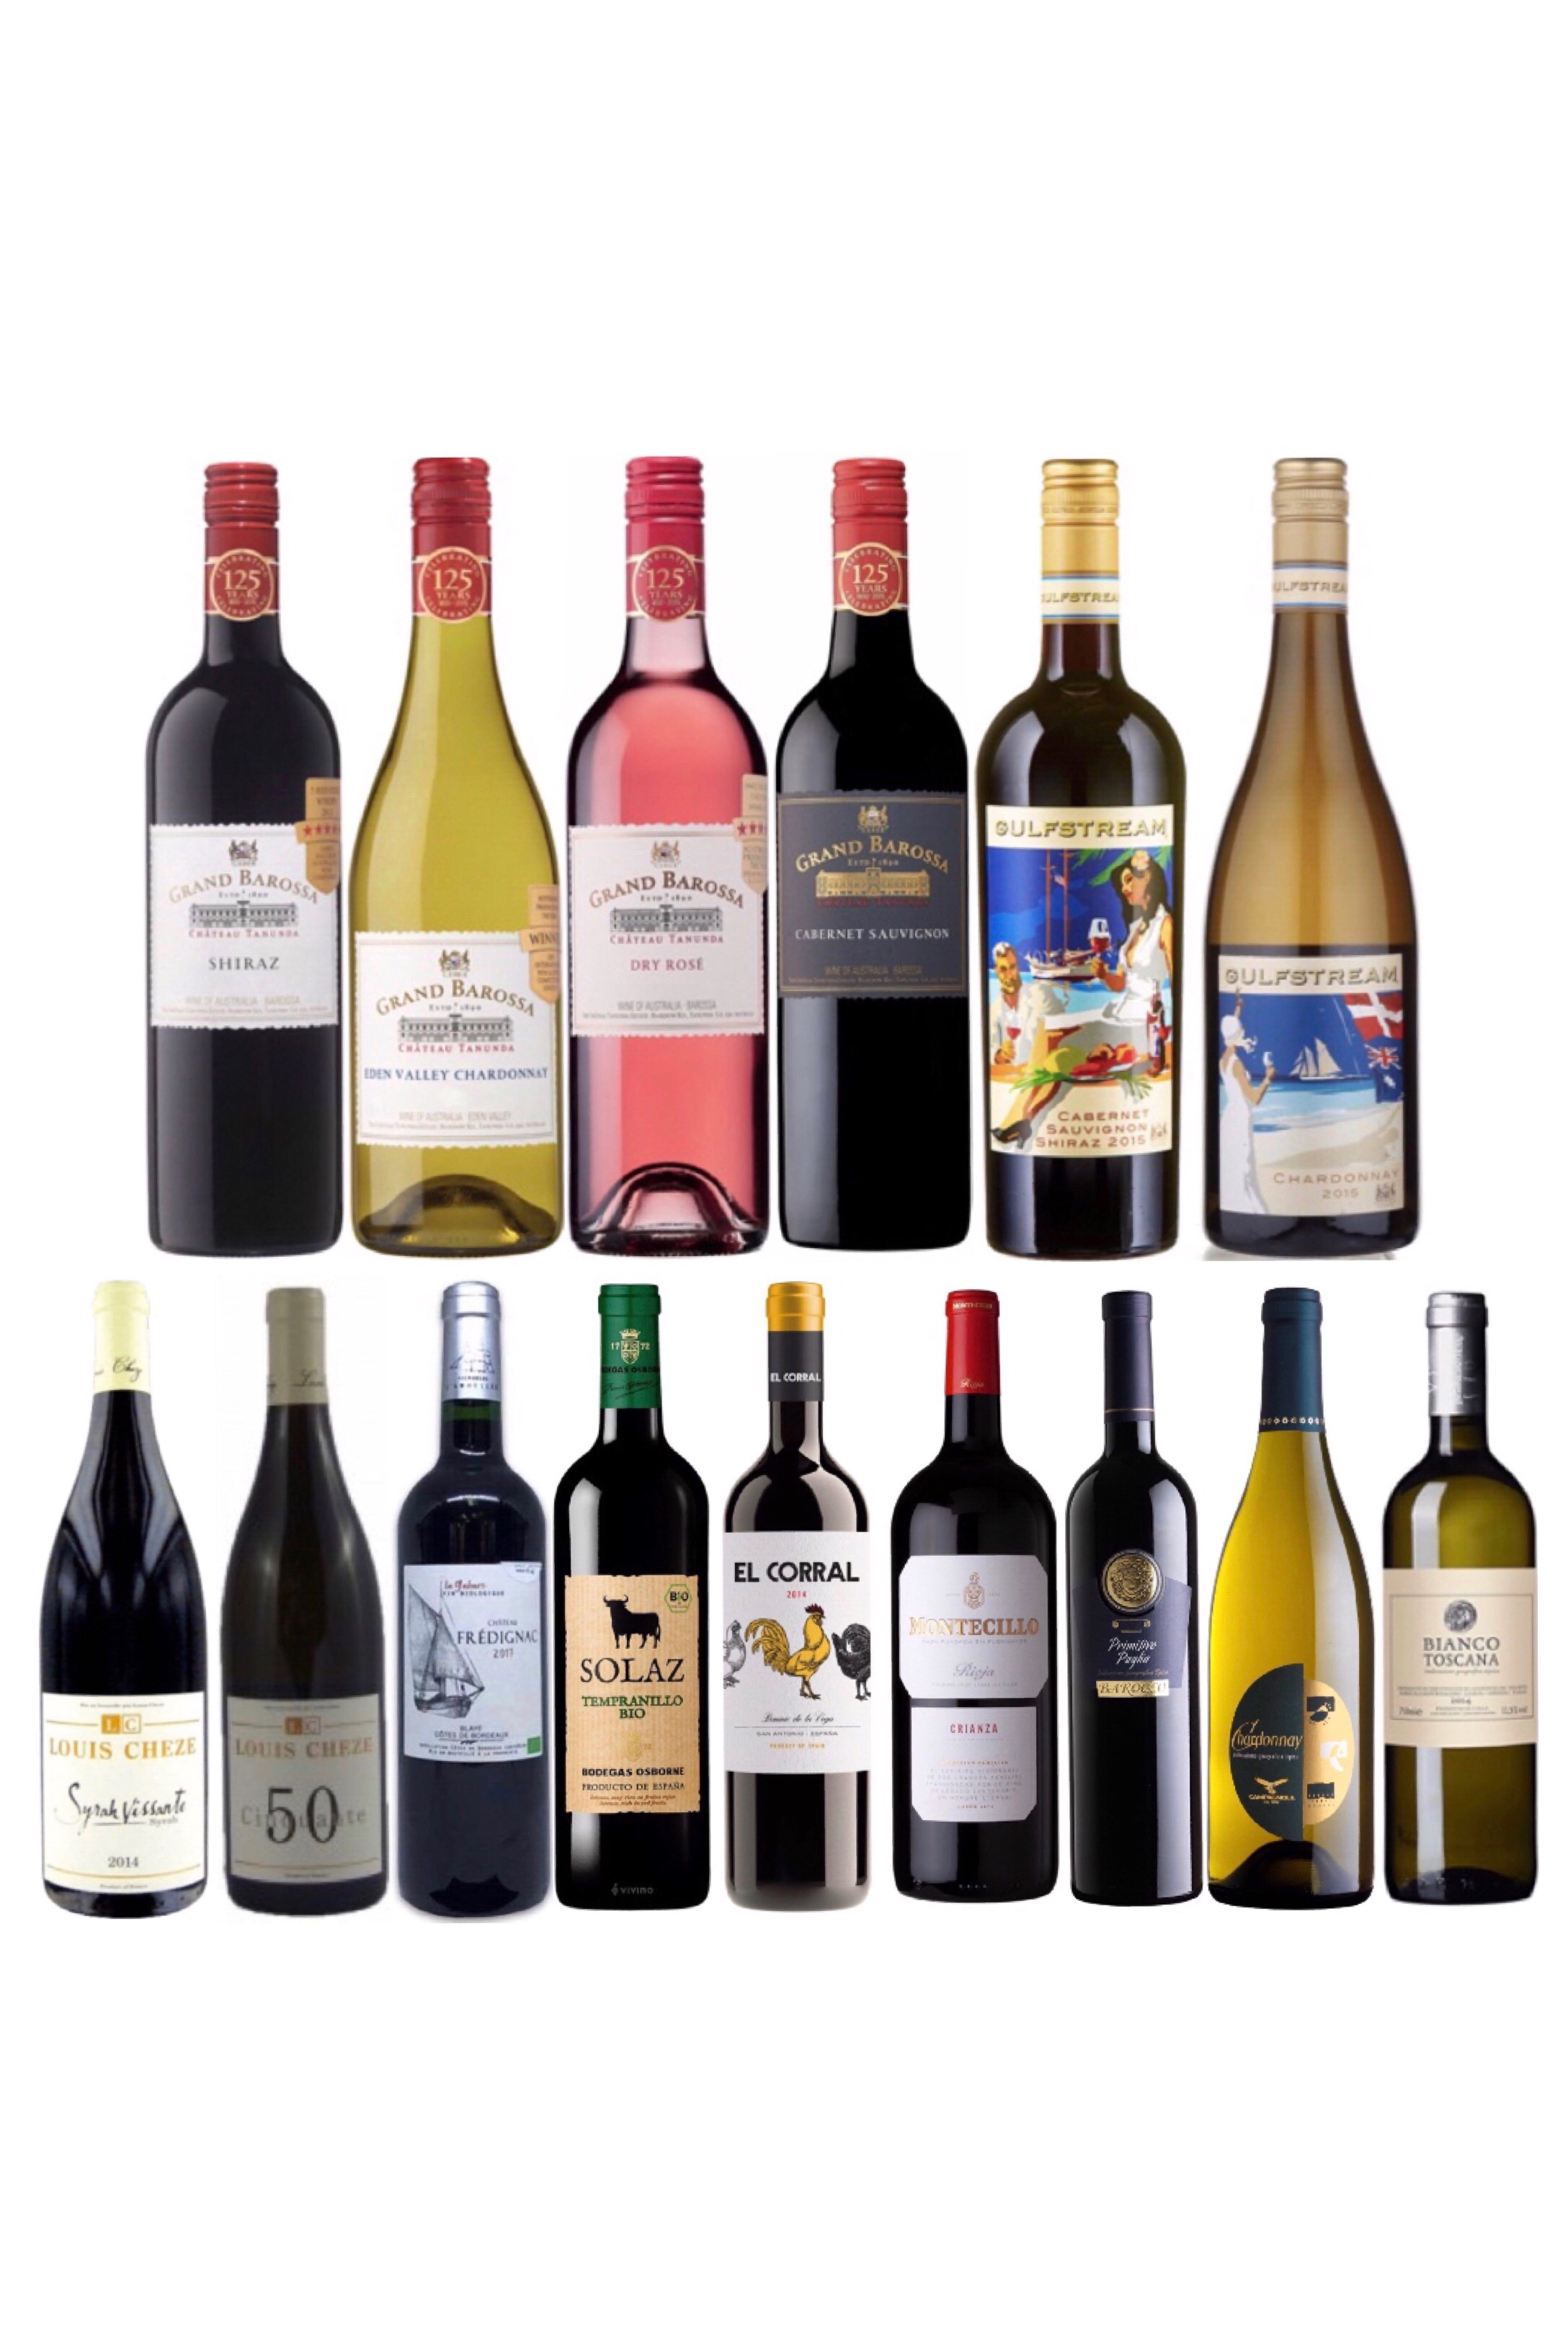 Choose any 2 bottles of wine and get 1 Free WITH FREE DELIVERY only at $108!